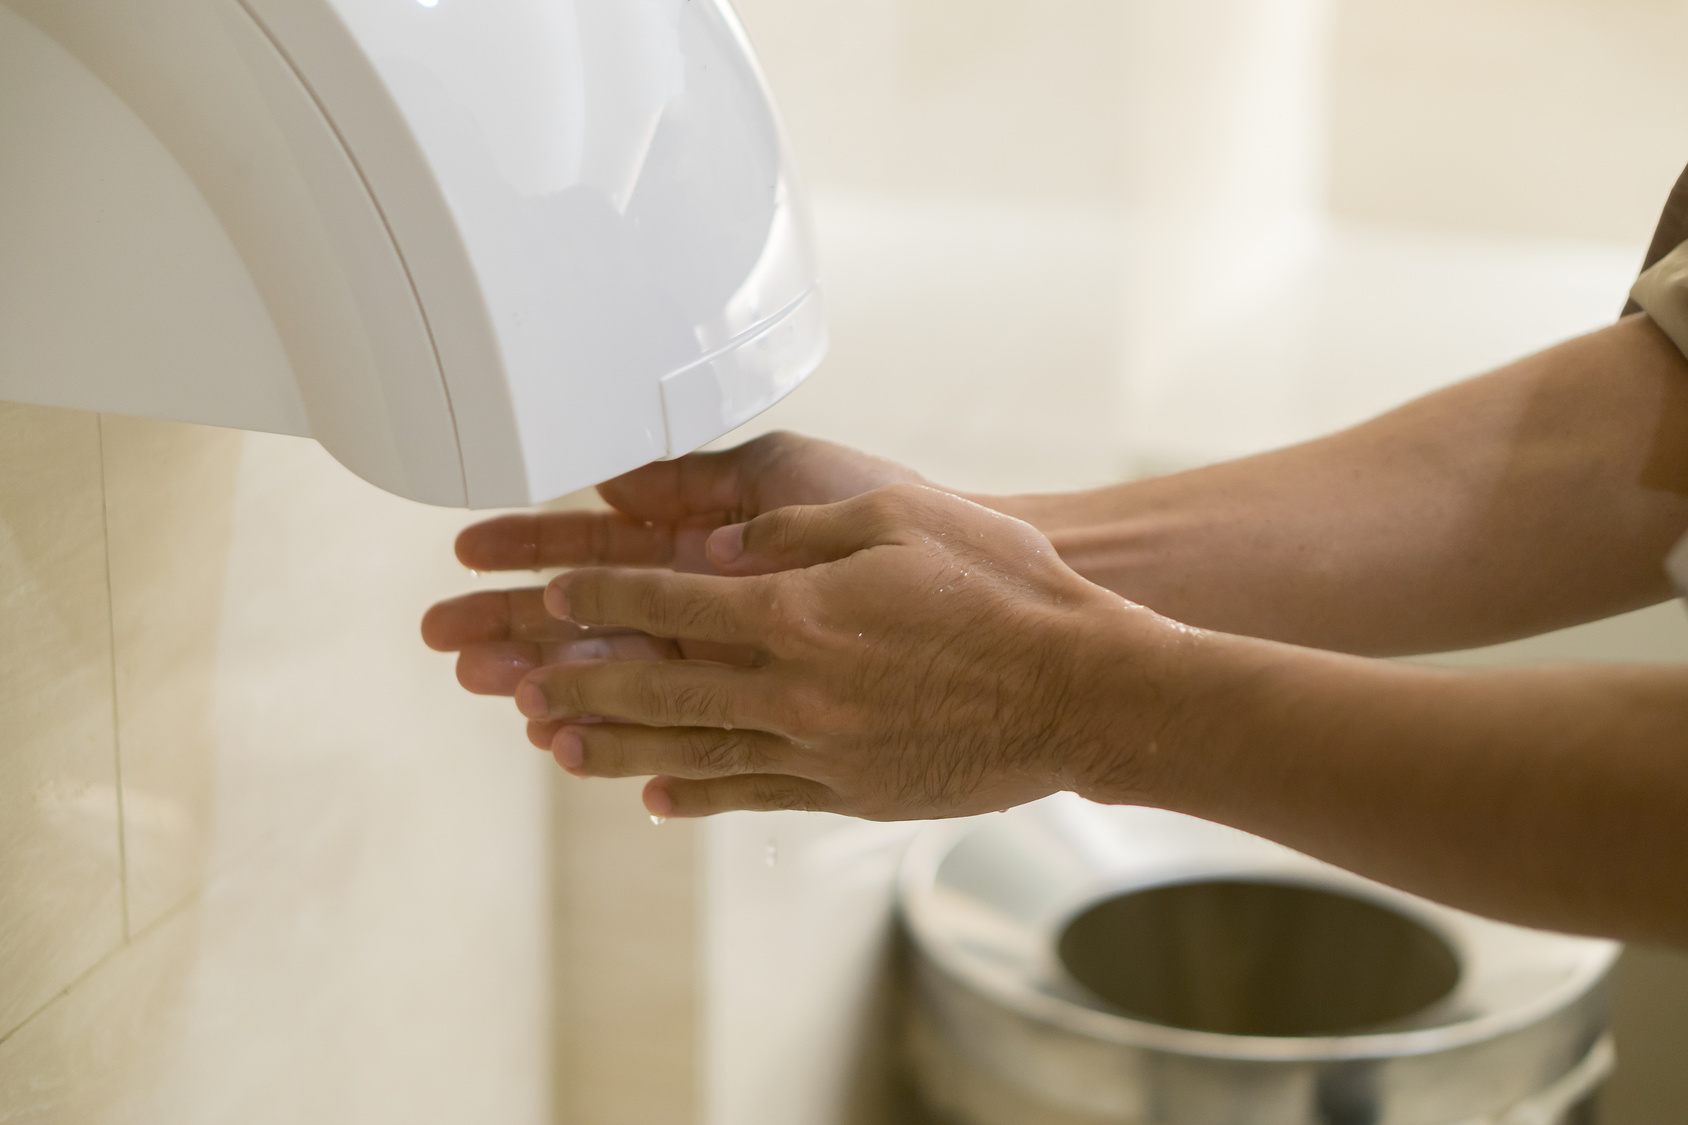 Need help choosing a hand dryer?